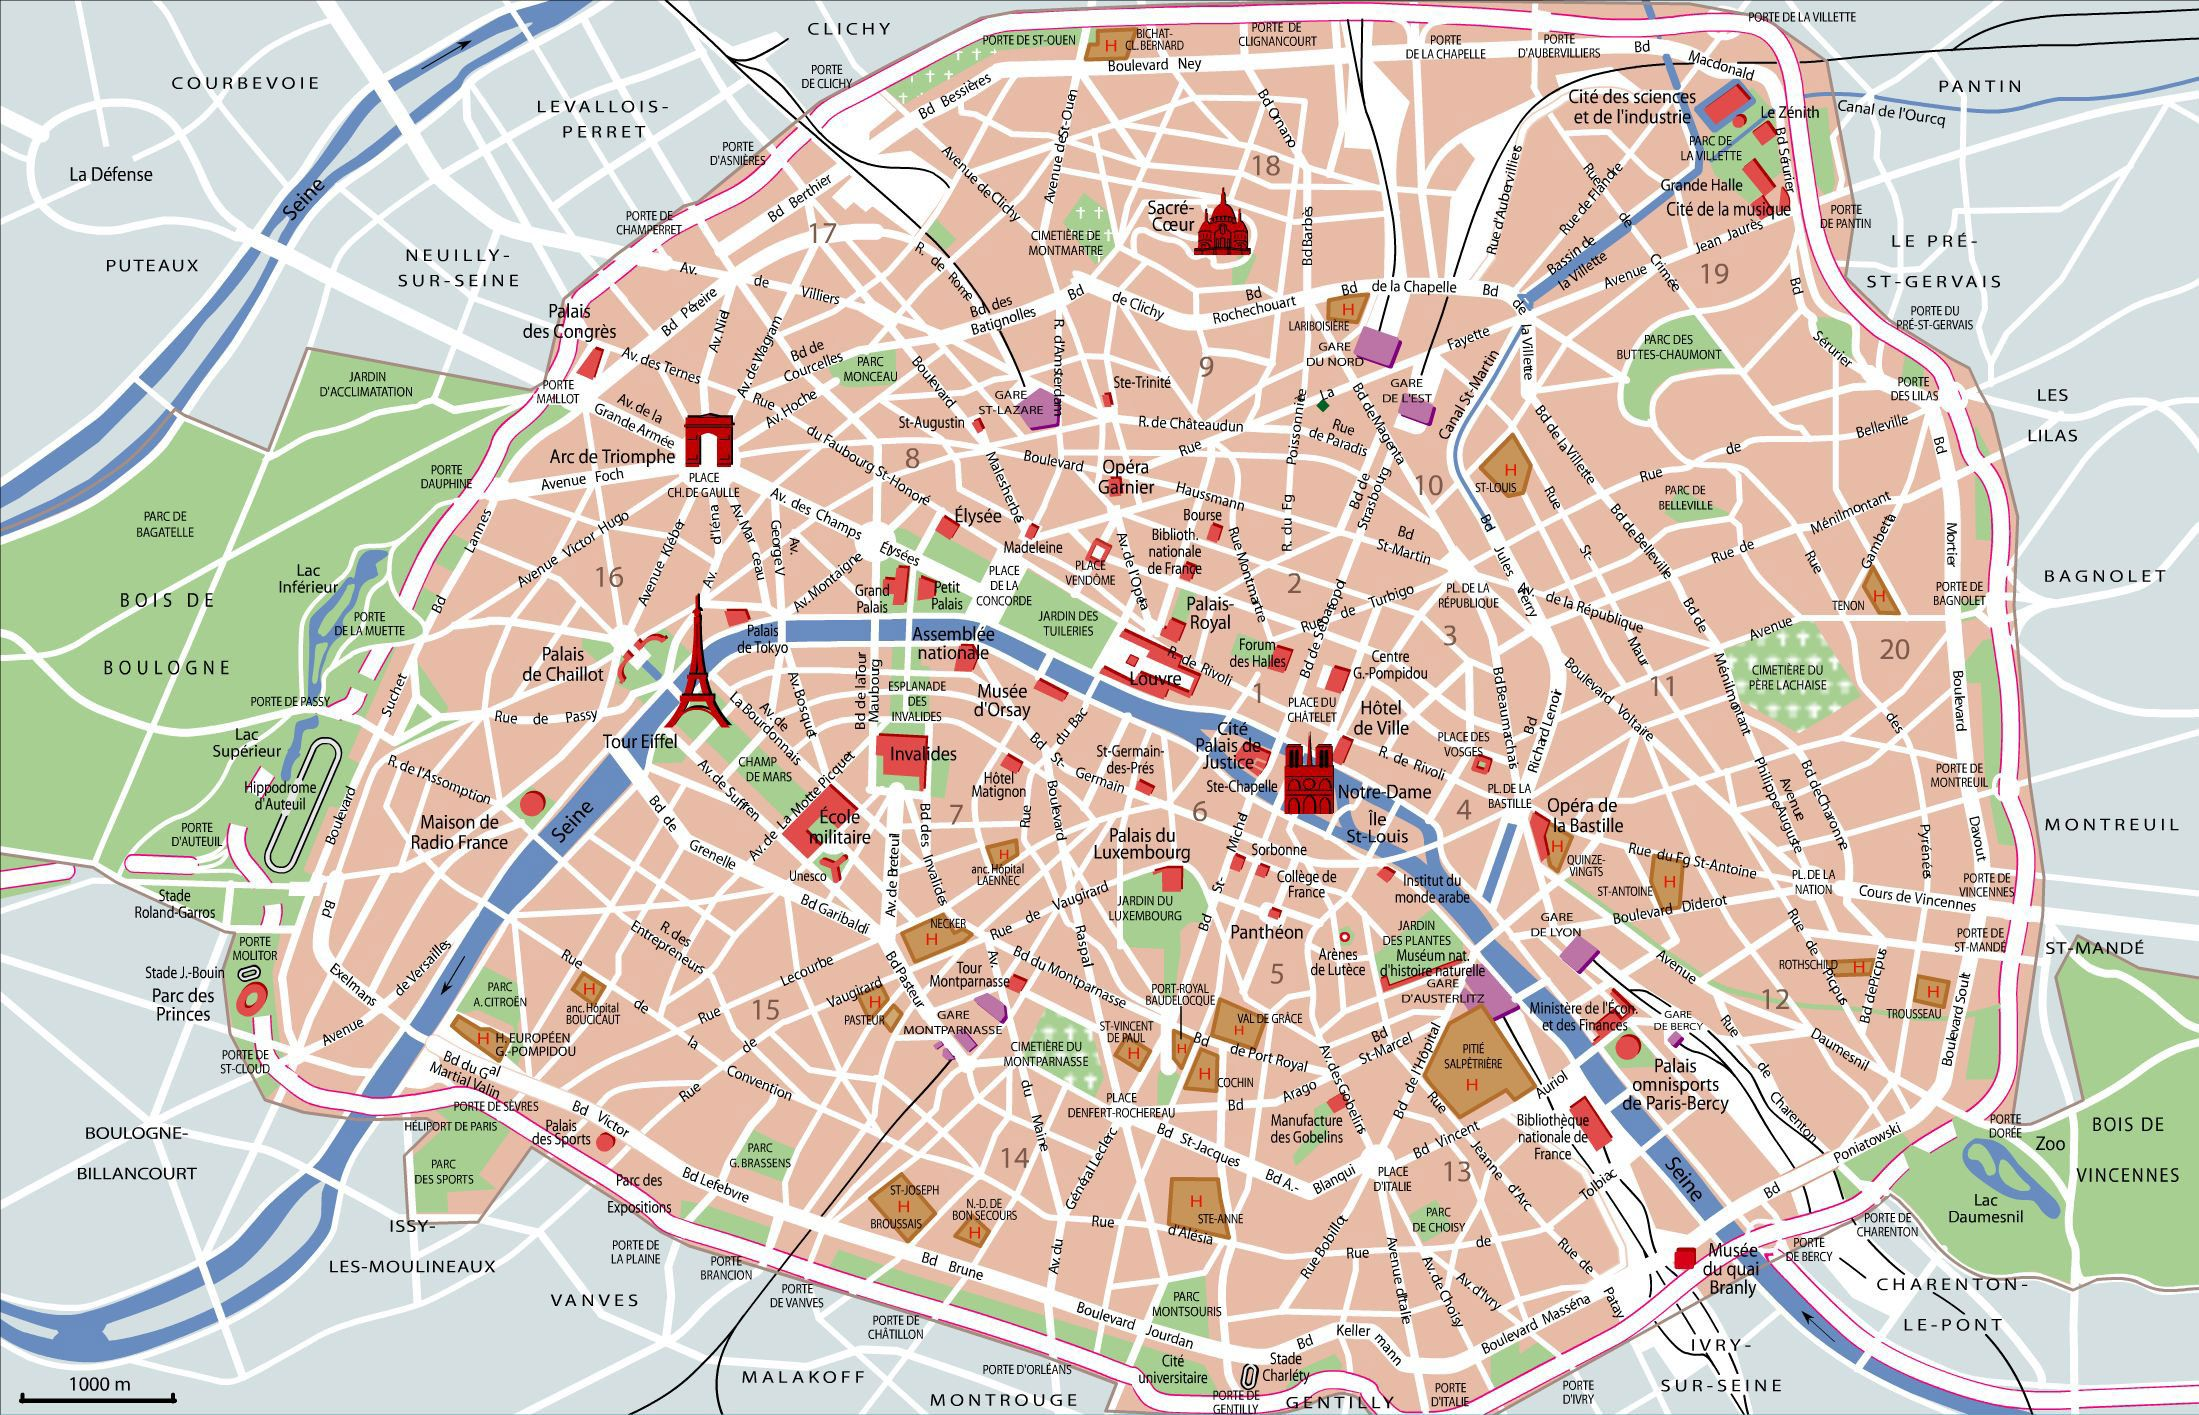 Map of Paris tourist attractions, sightseeing & tourist